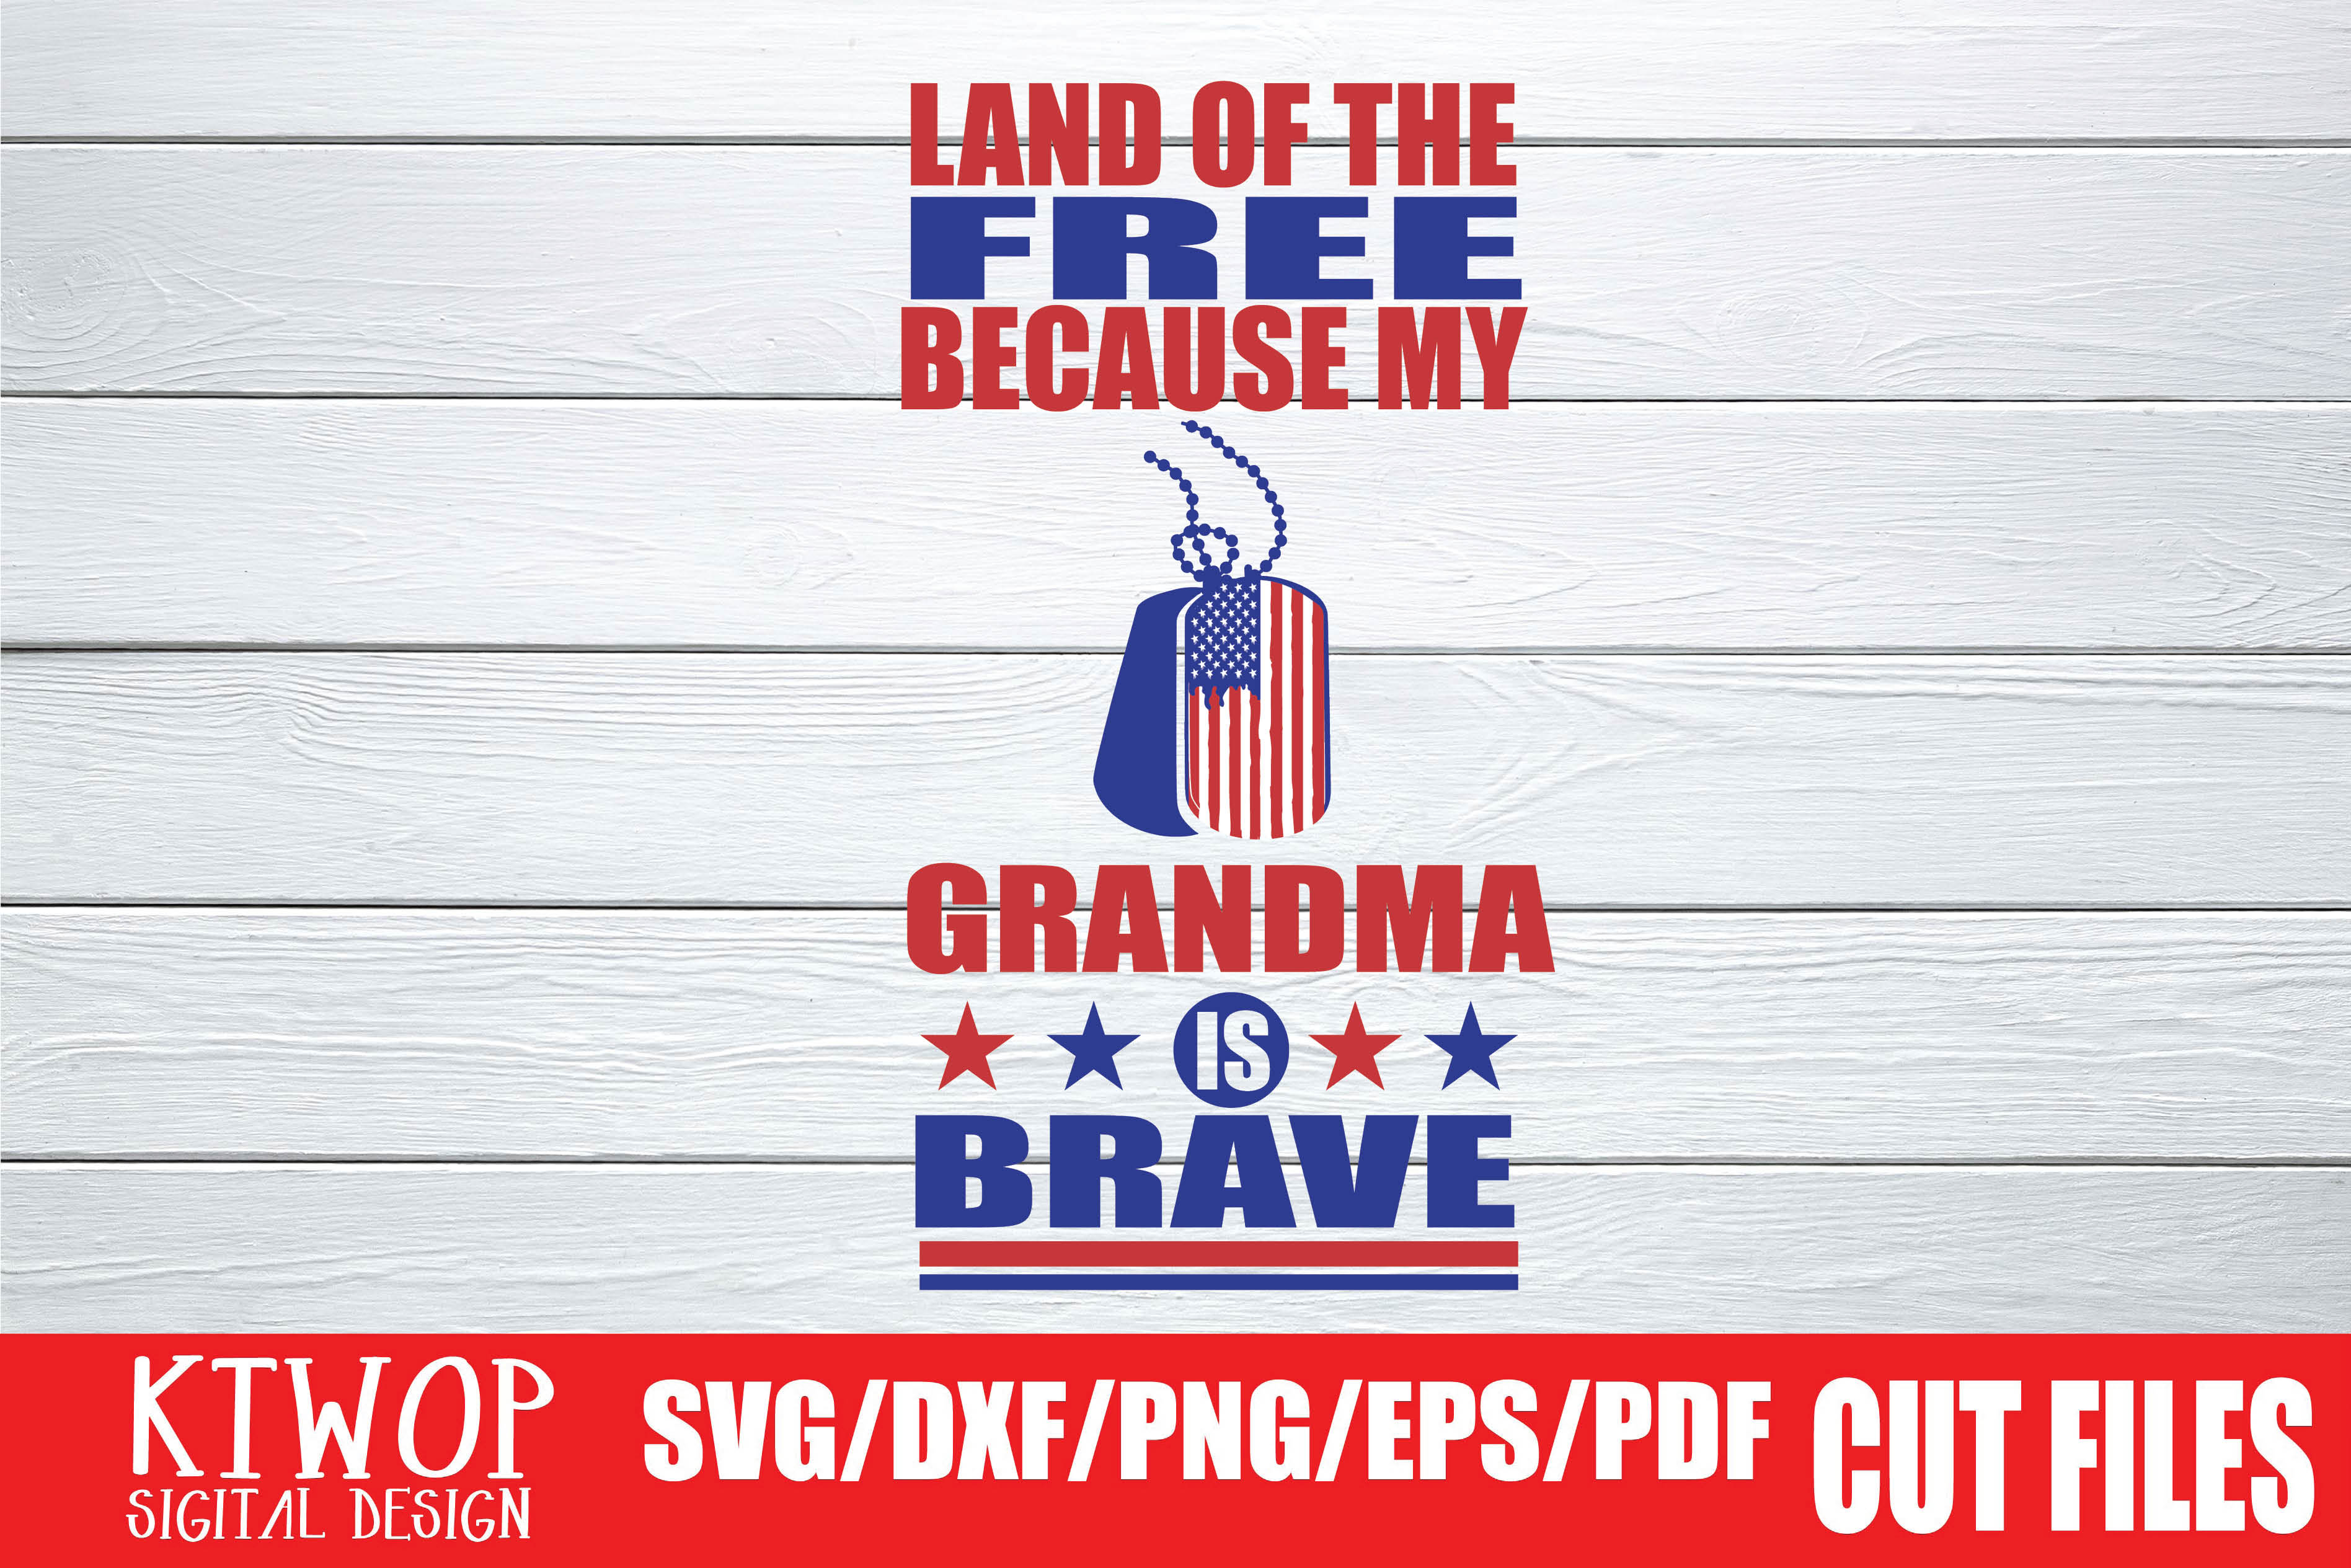 Download Free Land Of The Free Because My Grandma Is Brave Graphic By Ktwop for Cricut Explore, Silhouette and other cutting machines.